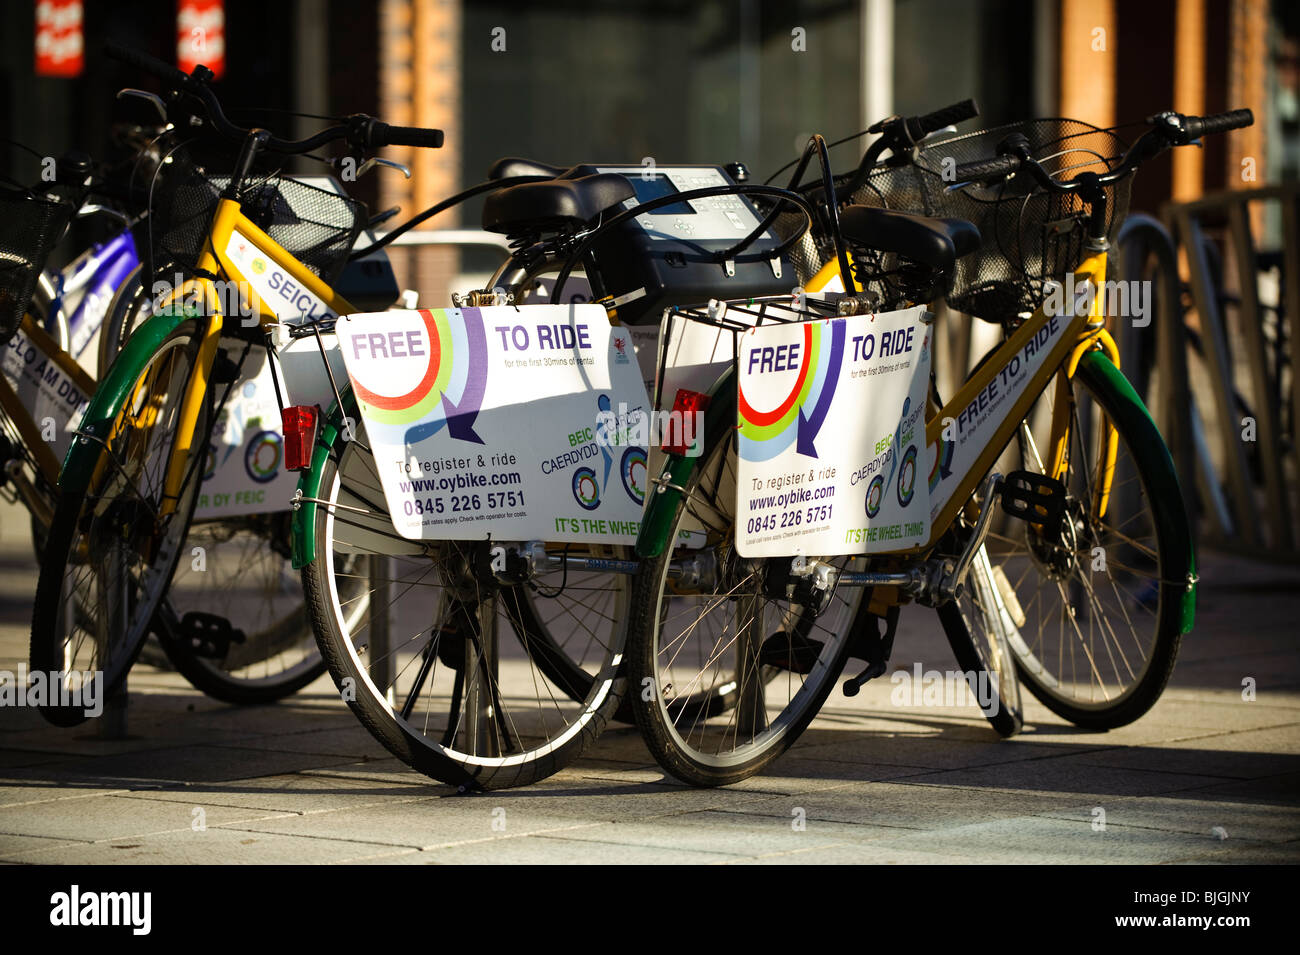 OYBIKE.COM Ring and Ride bike hire service, Cardiff Wales UK - Stock Image